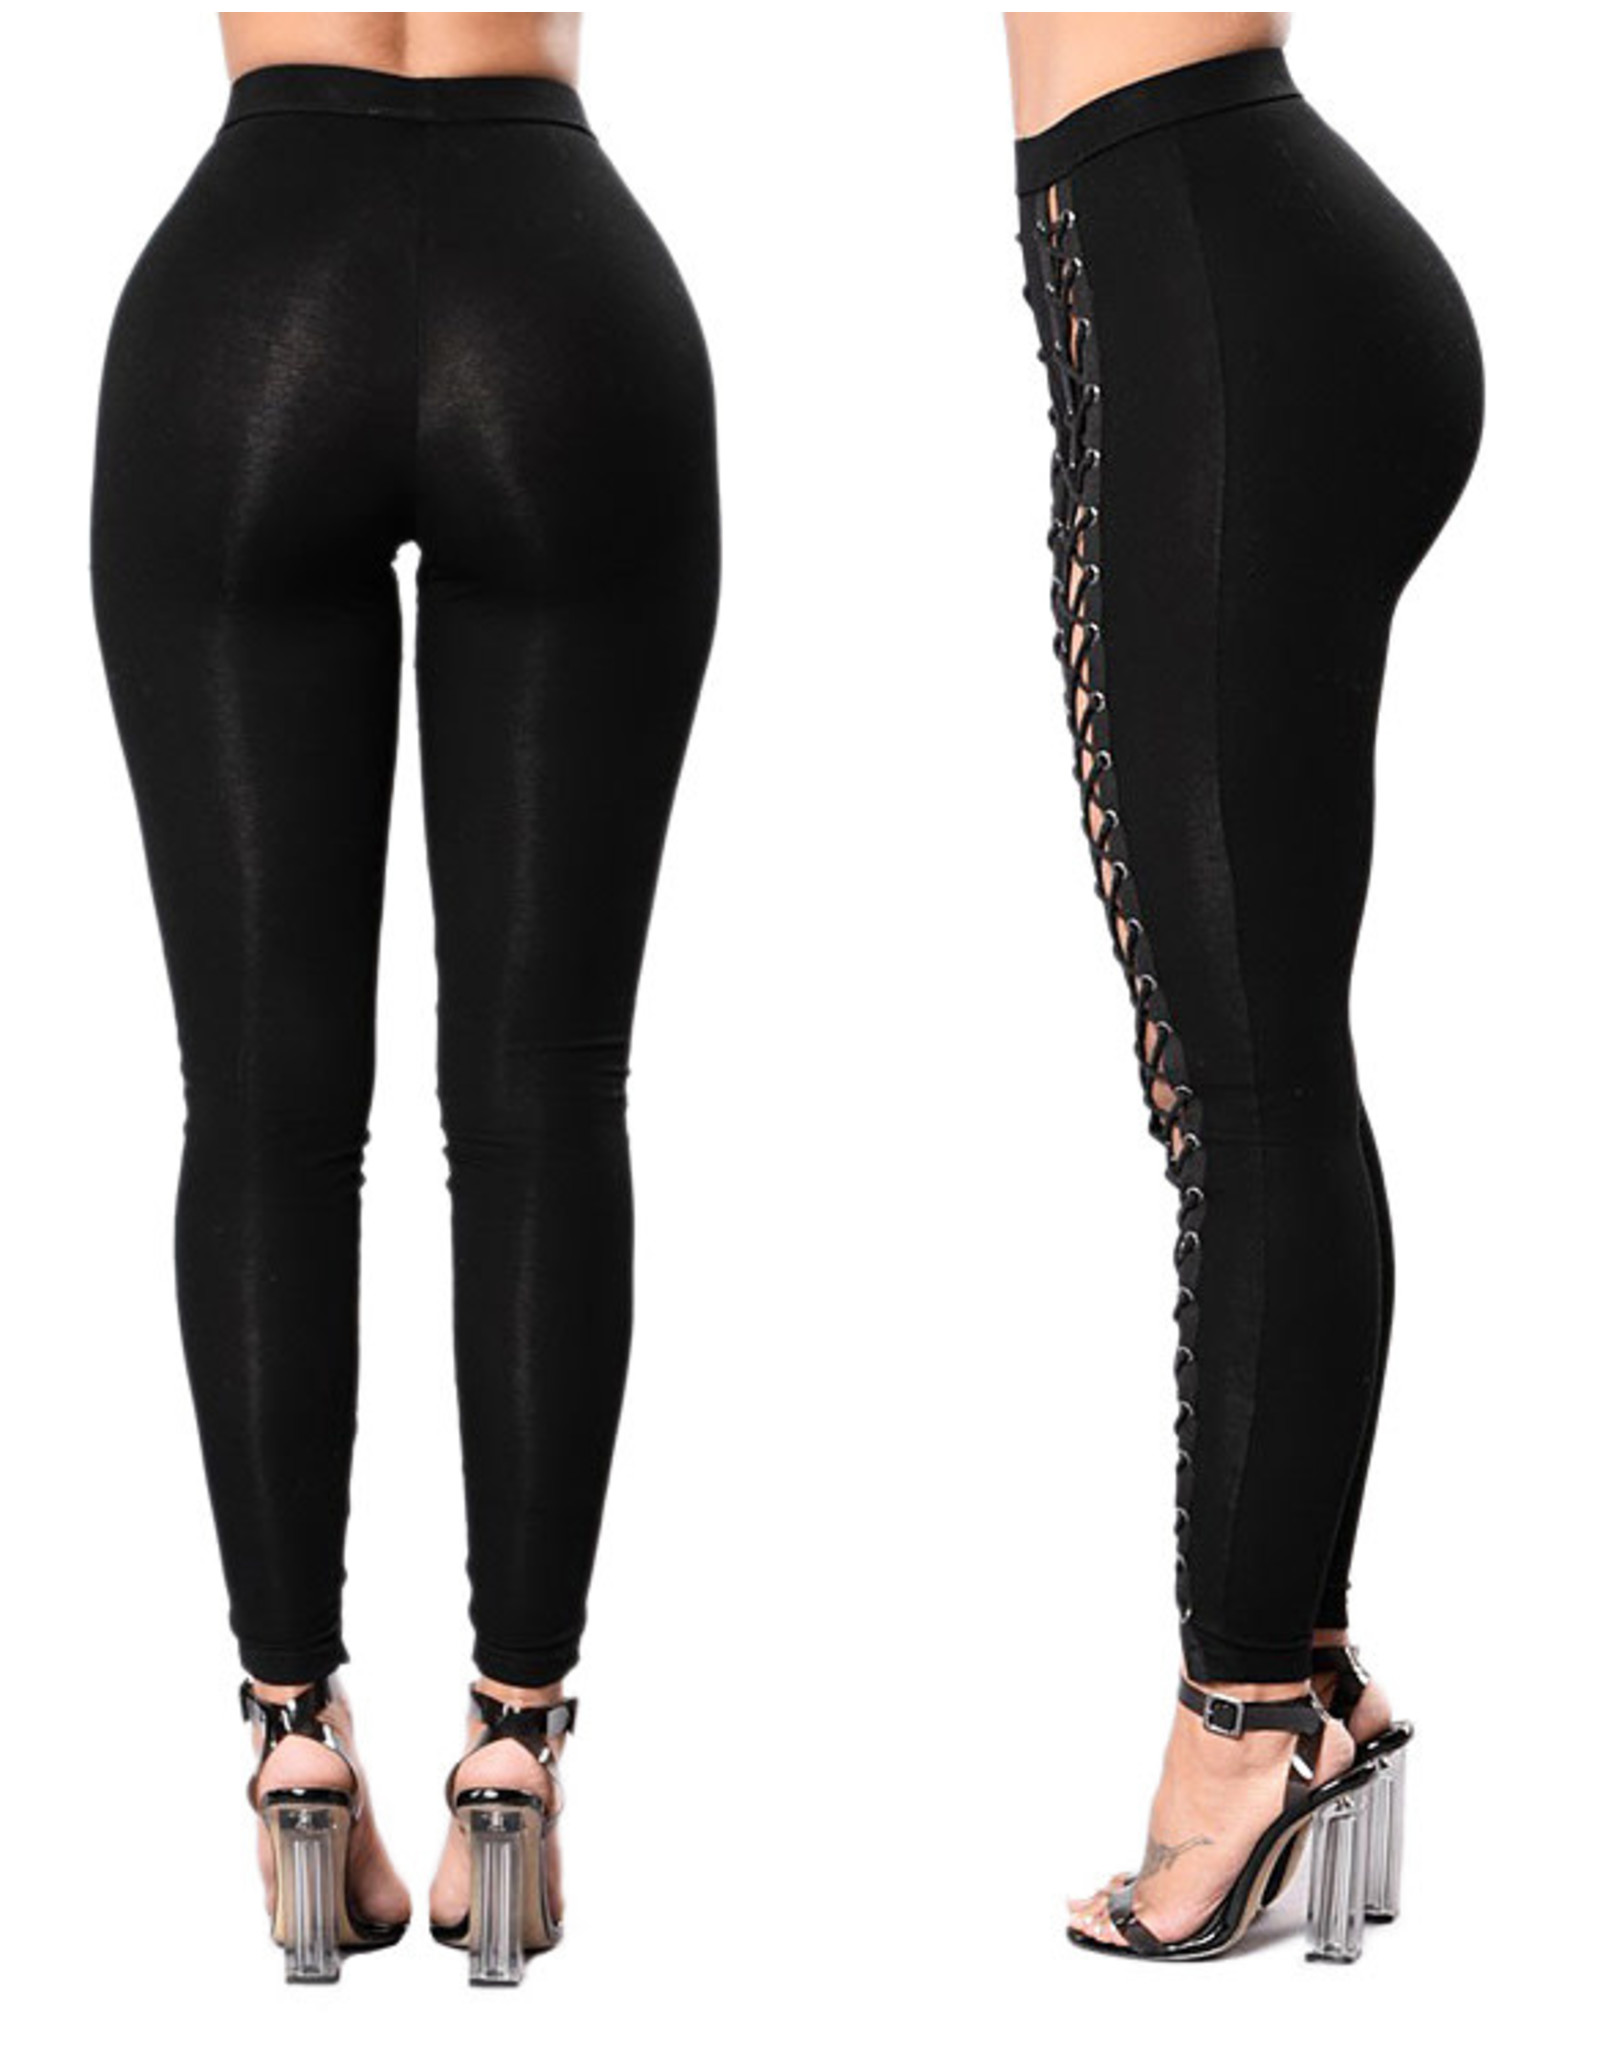 HIGH-RISE LACE-UP FRONT BODYCON LEGGINGS SMALL